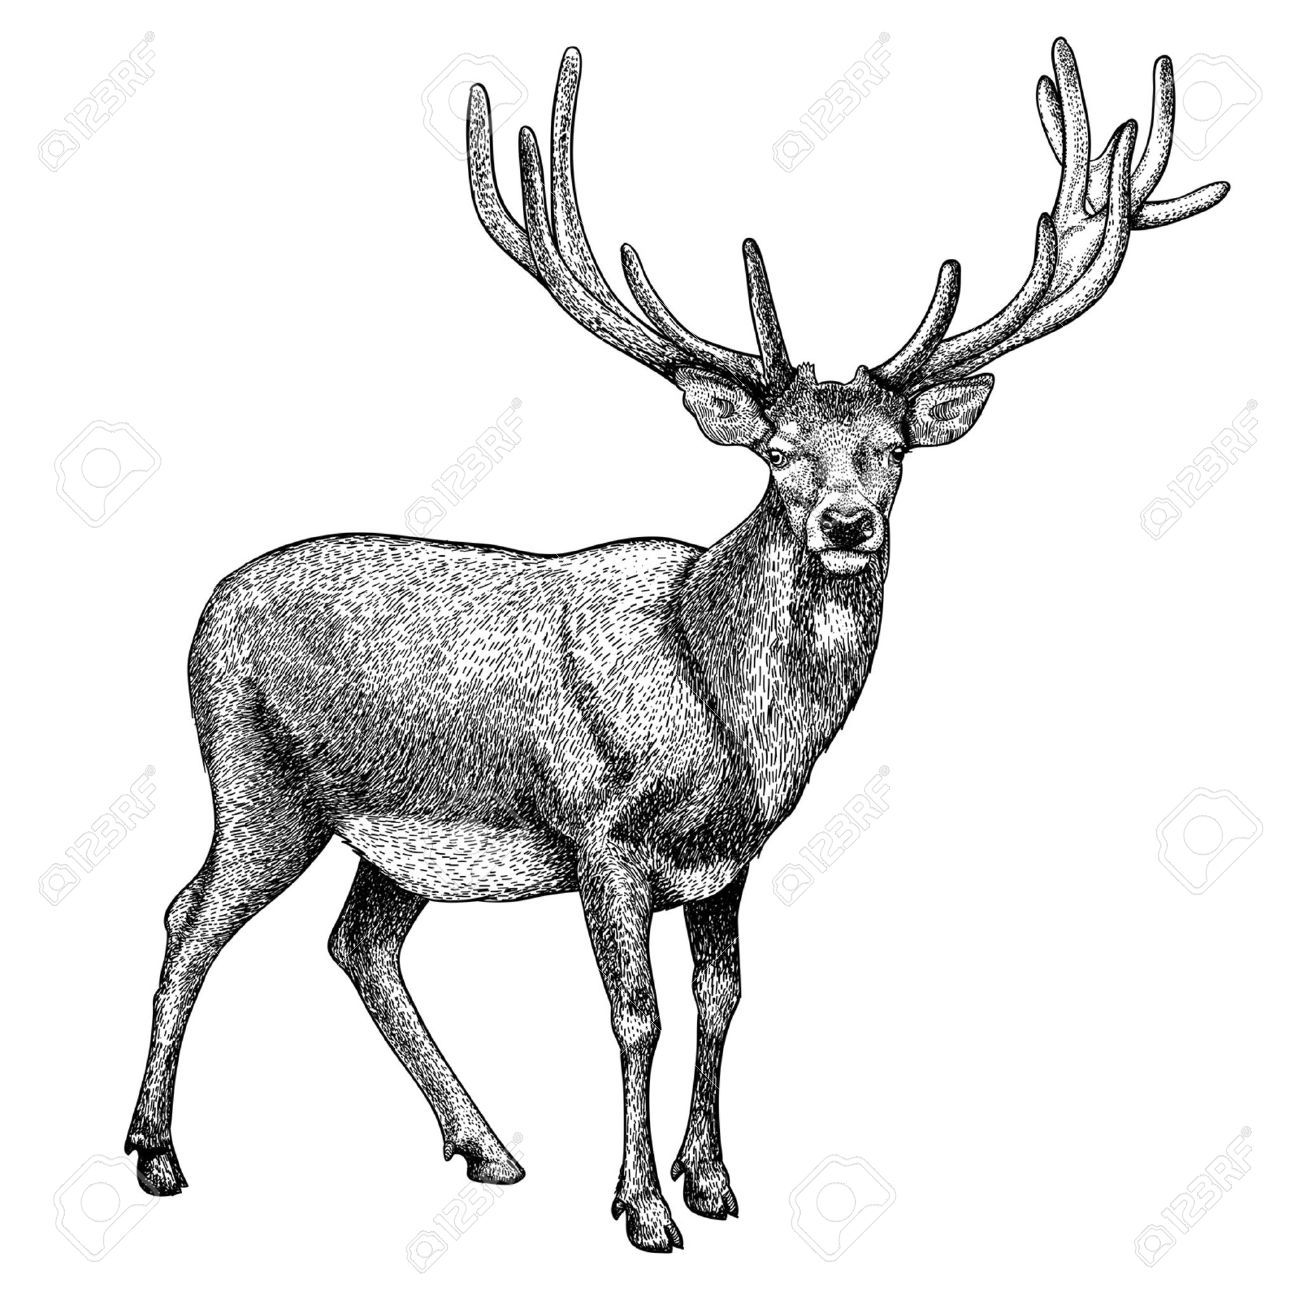 antique print of a reindeer isolated on white royalty free